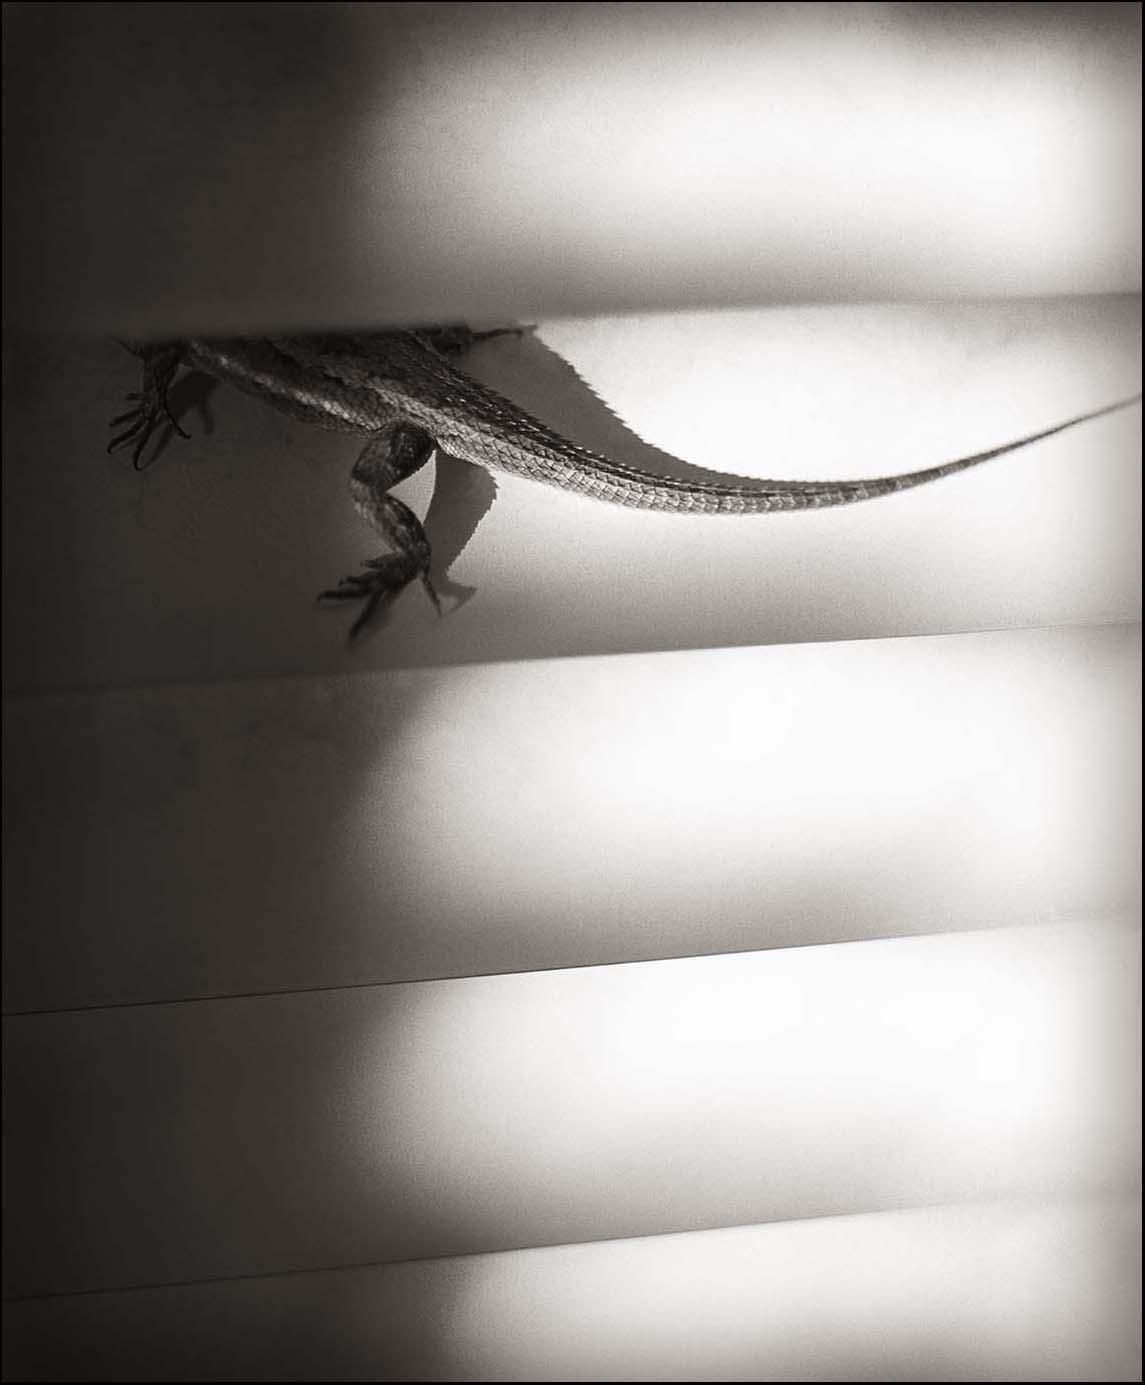 Lizard on Venetian Blind